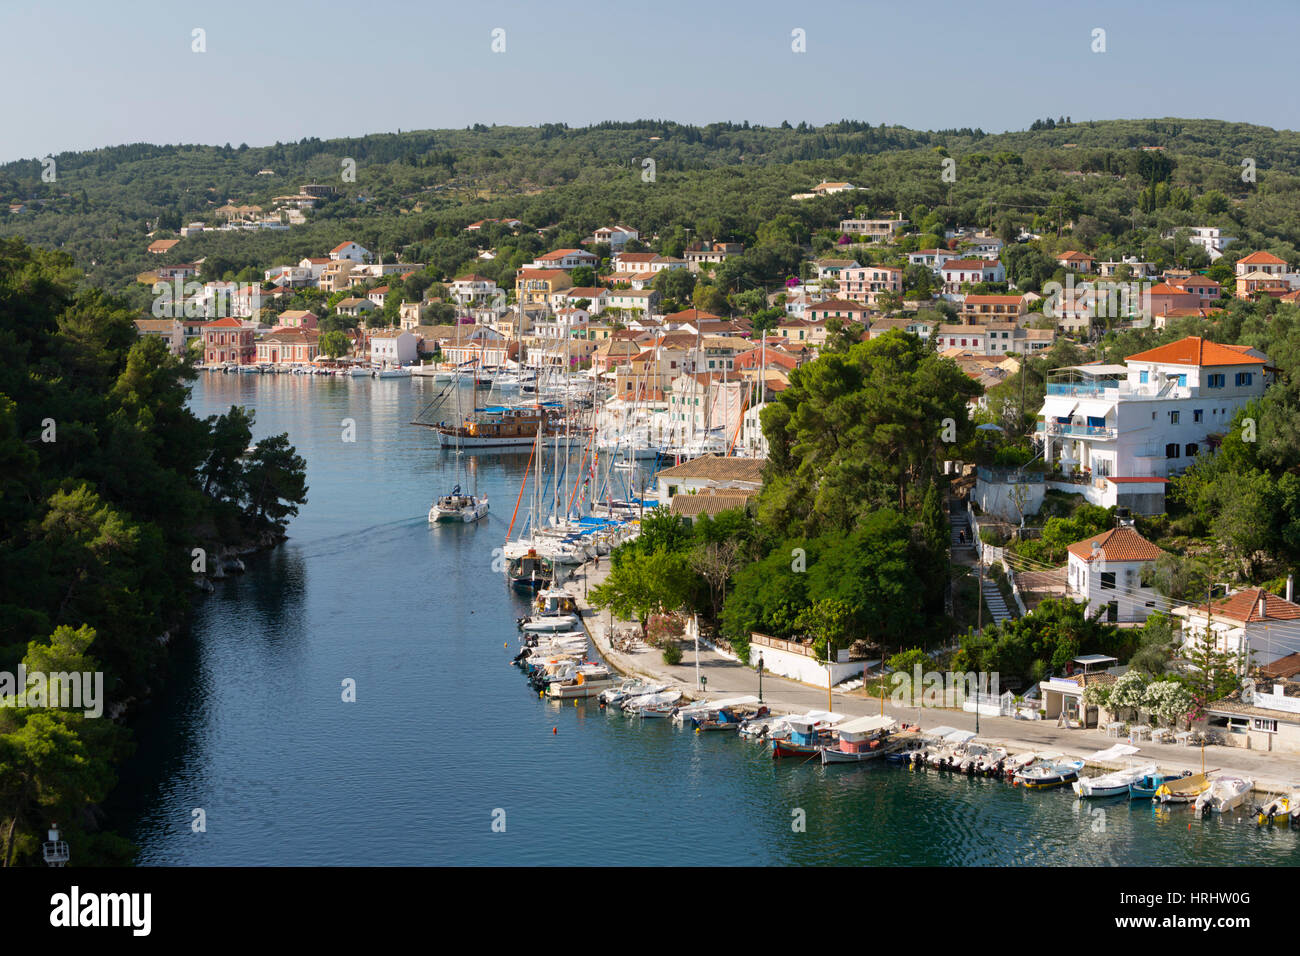 Harbour of Gaios town, Paxos, Ionian Islands, Greek Islands, Greece - Stock Image